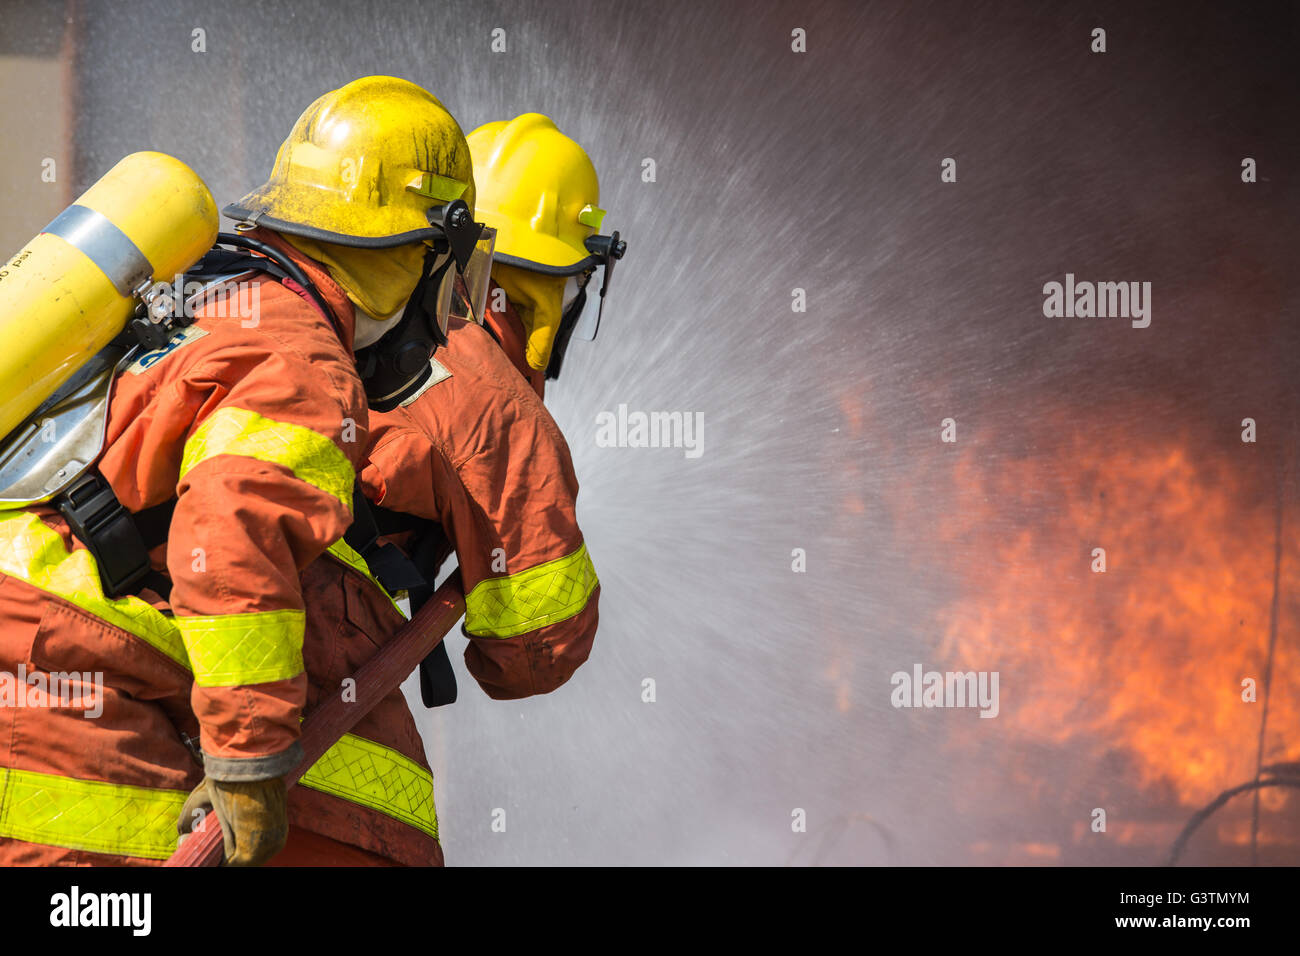 2 firefighters spraying water fire fighting operation - Stock Image